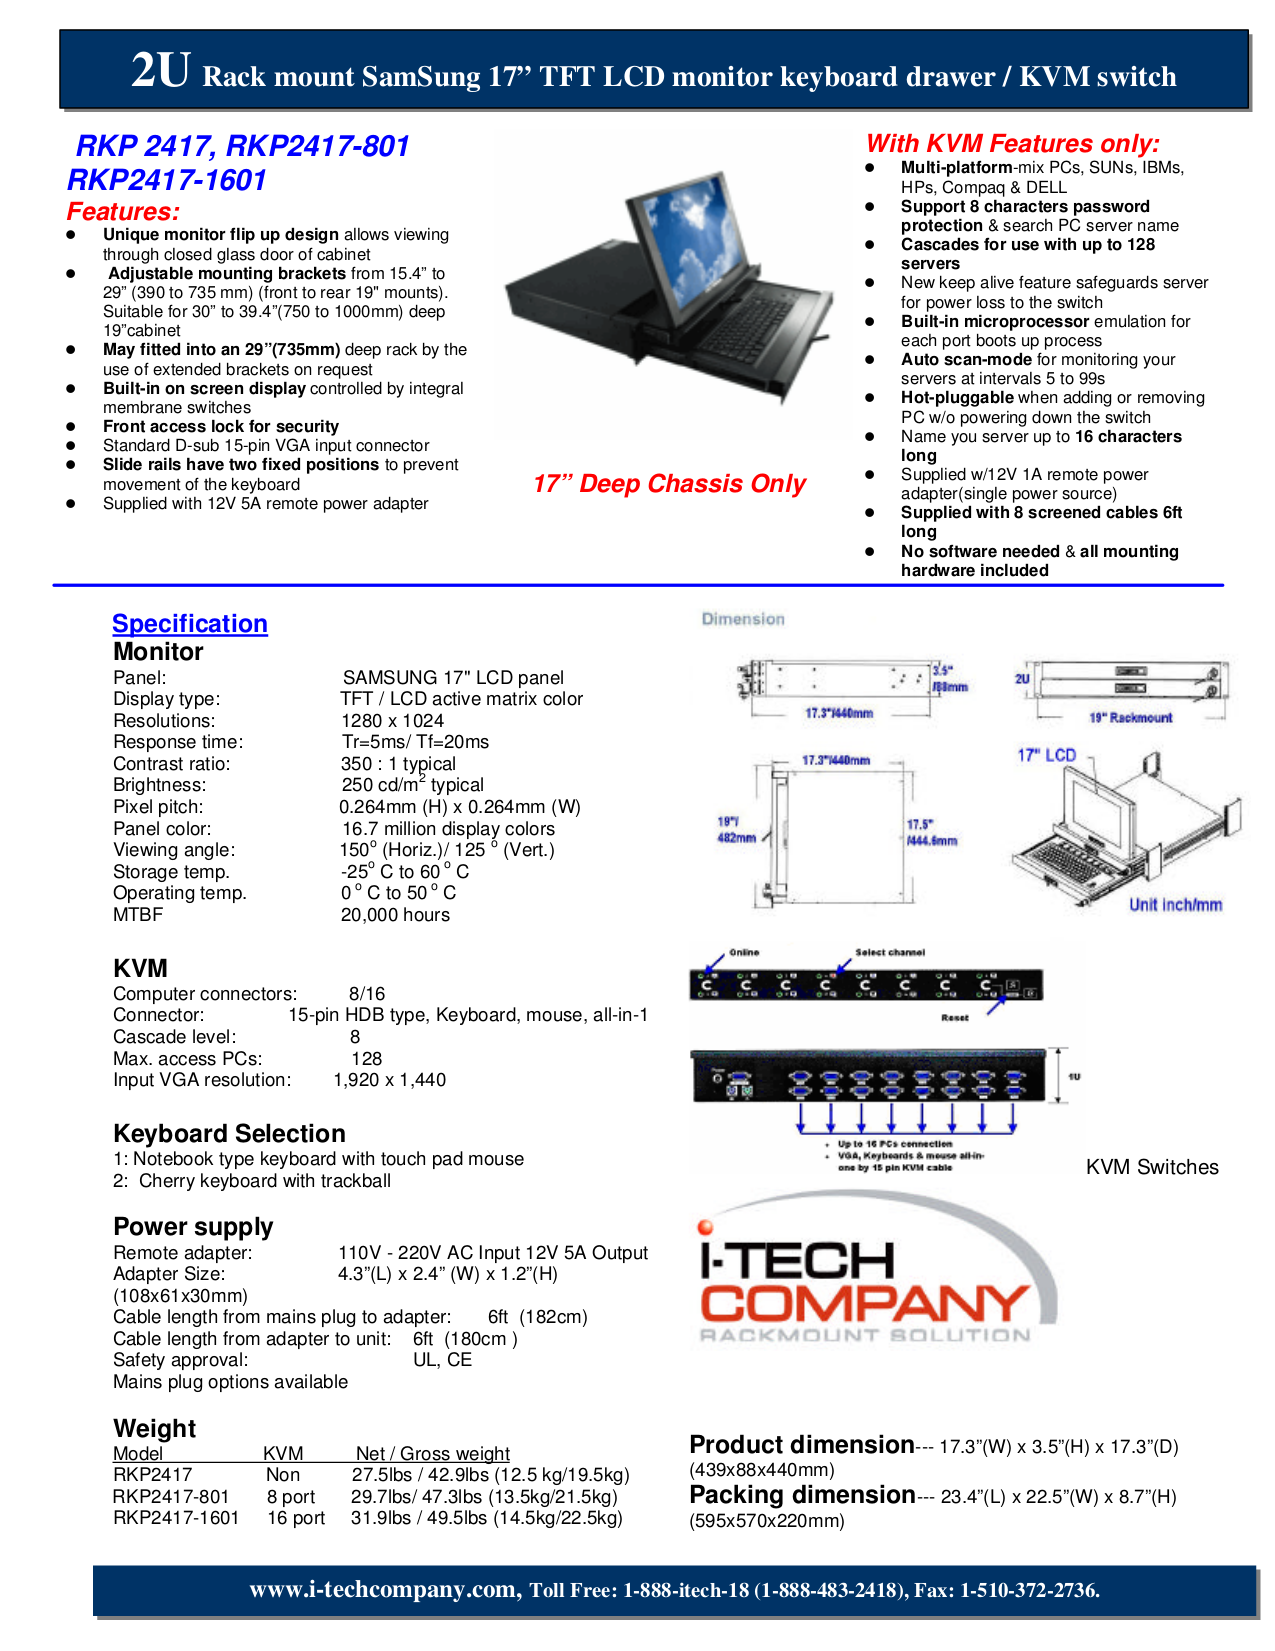 pdf for I-Tech Other RKP2417 Keyboard Drawers manual